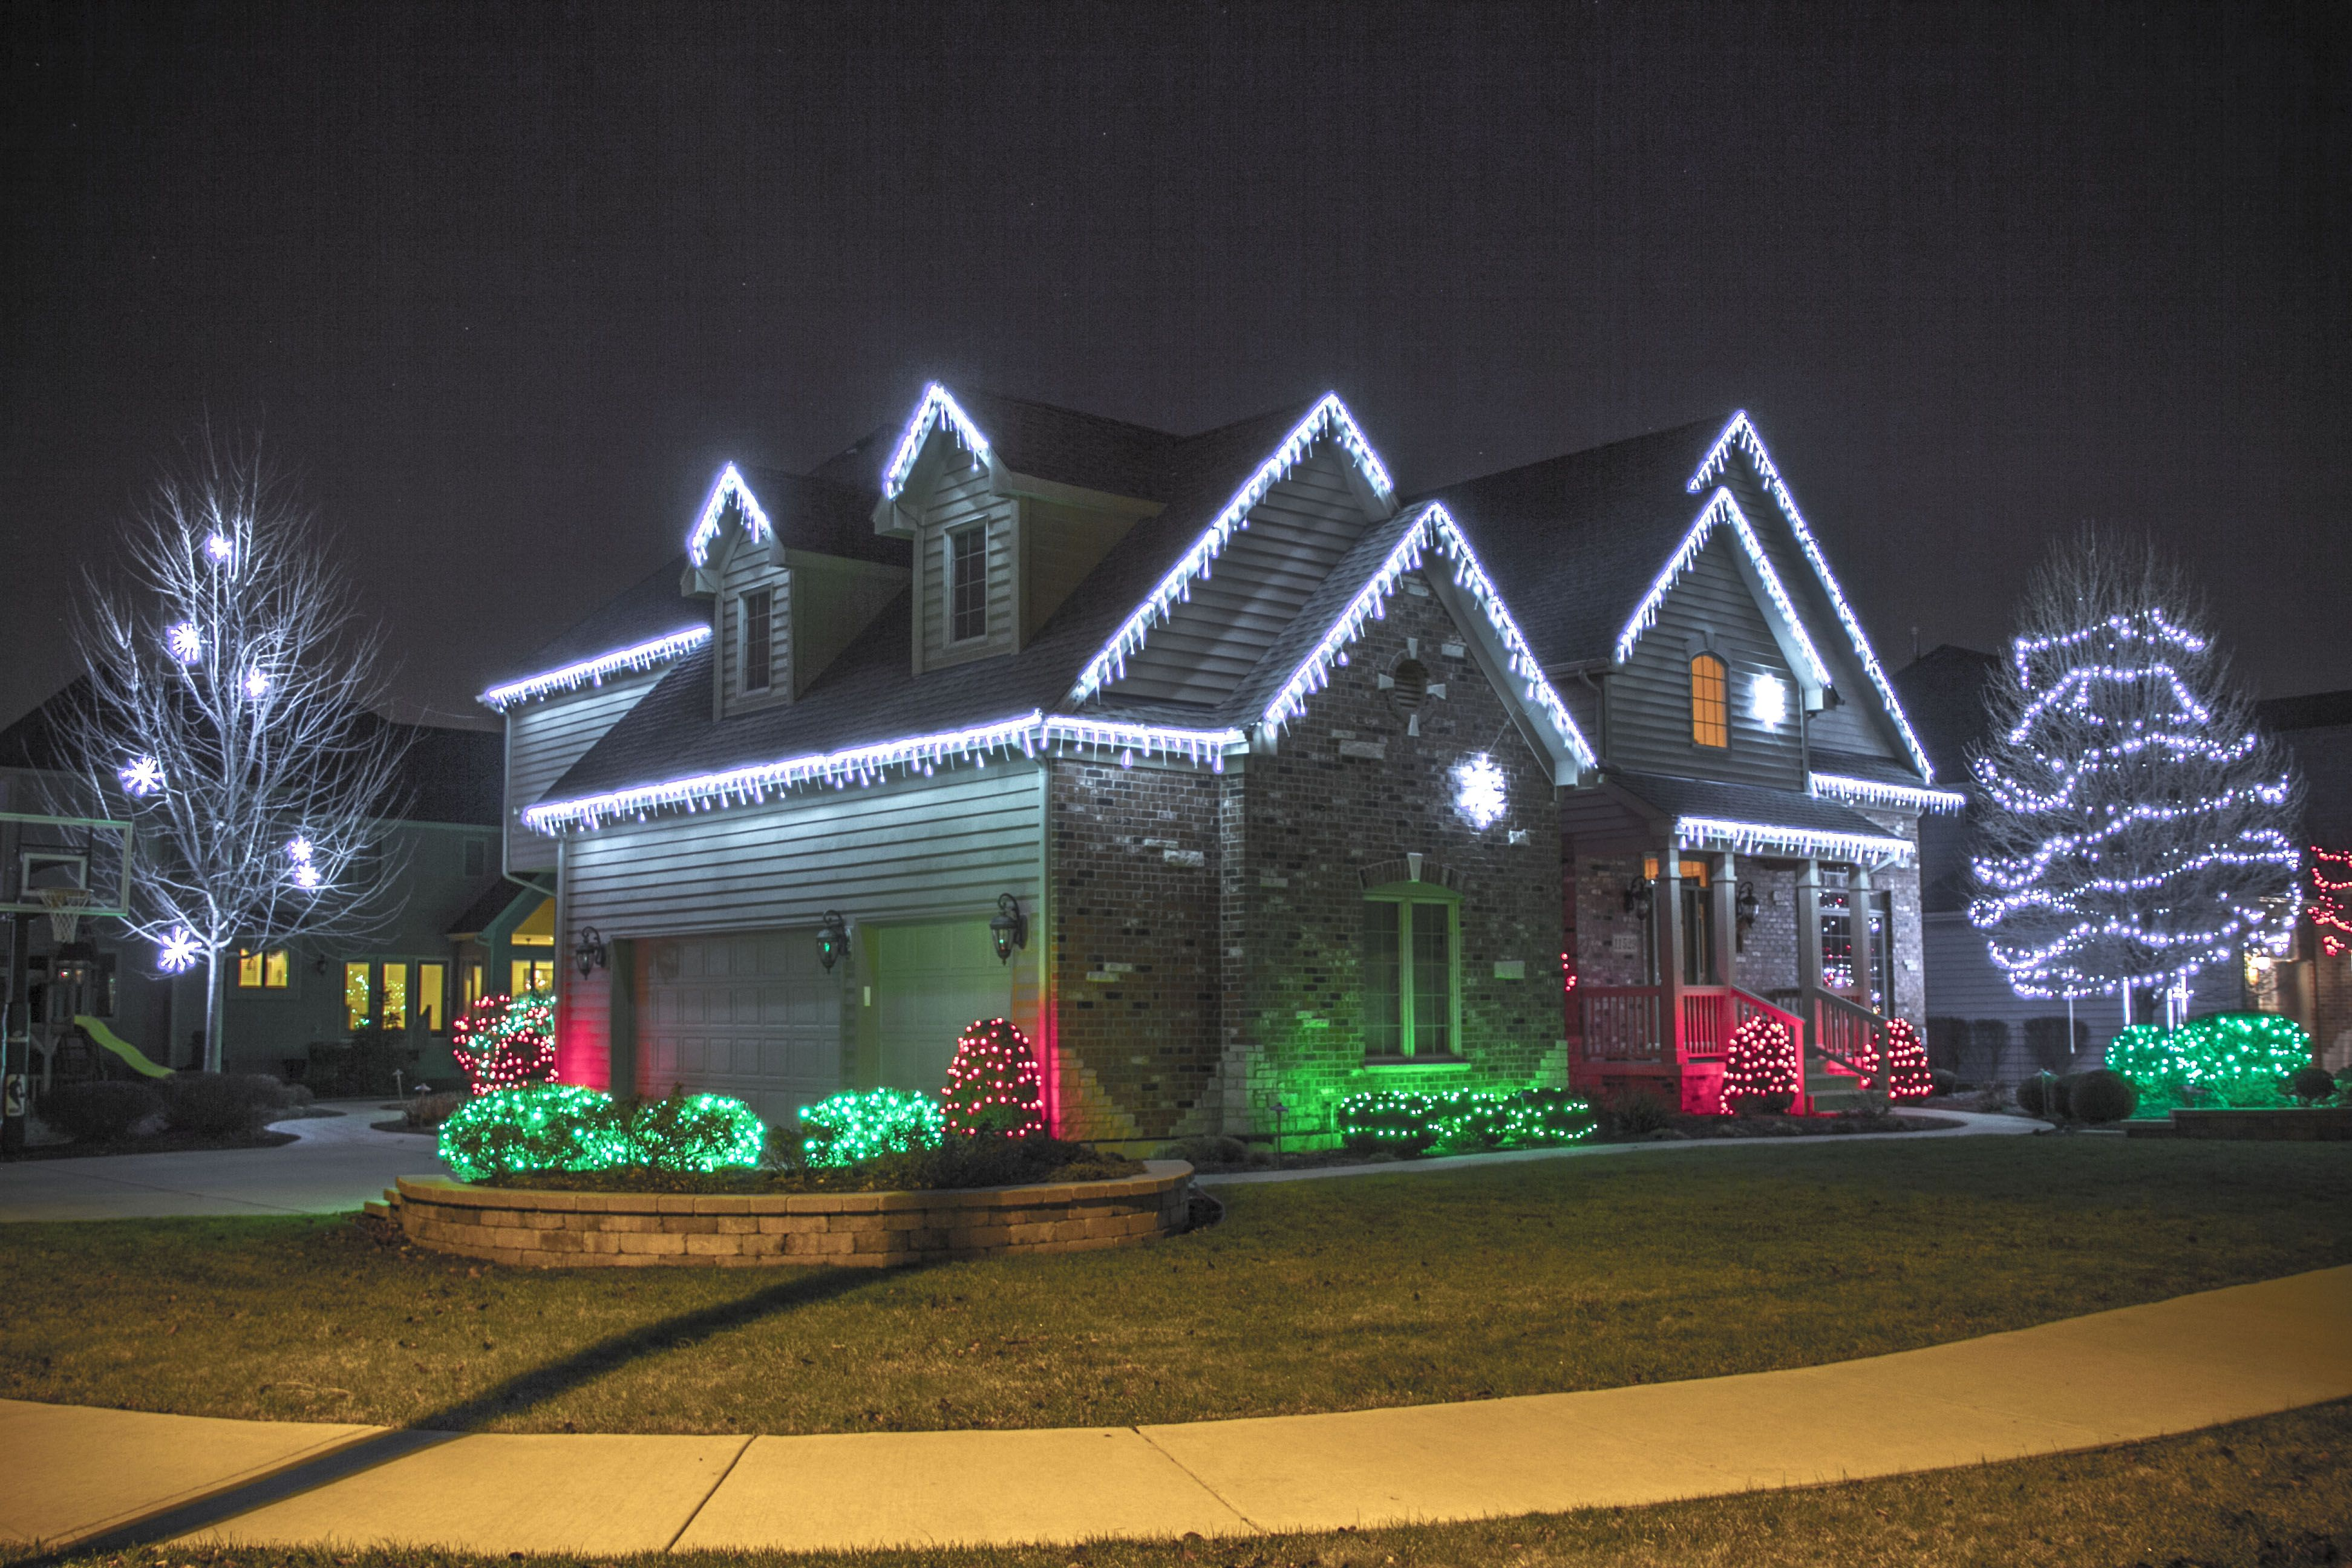 Christmas Outdoor Lighting Ideas: 17 Best images about Christmas outdoor lighting on Pinterest | Decorating  ideas, The tree and The grinch stole christmas,Lighting